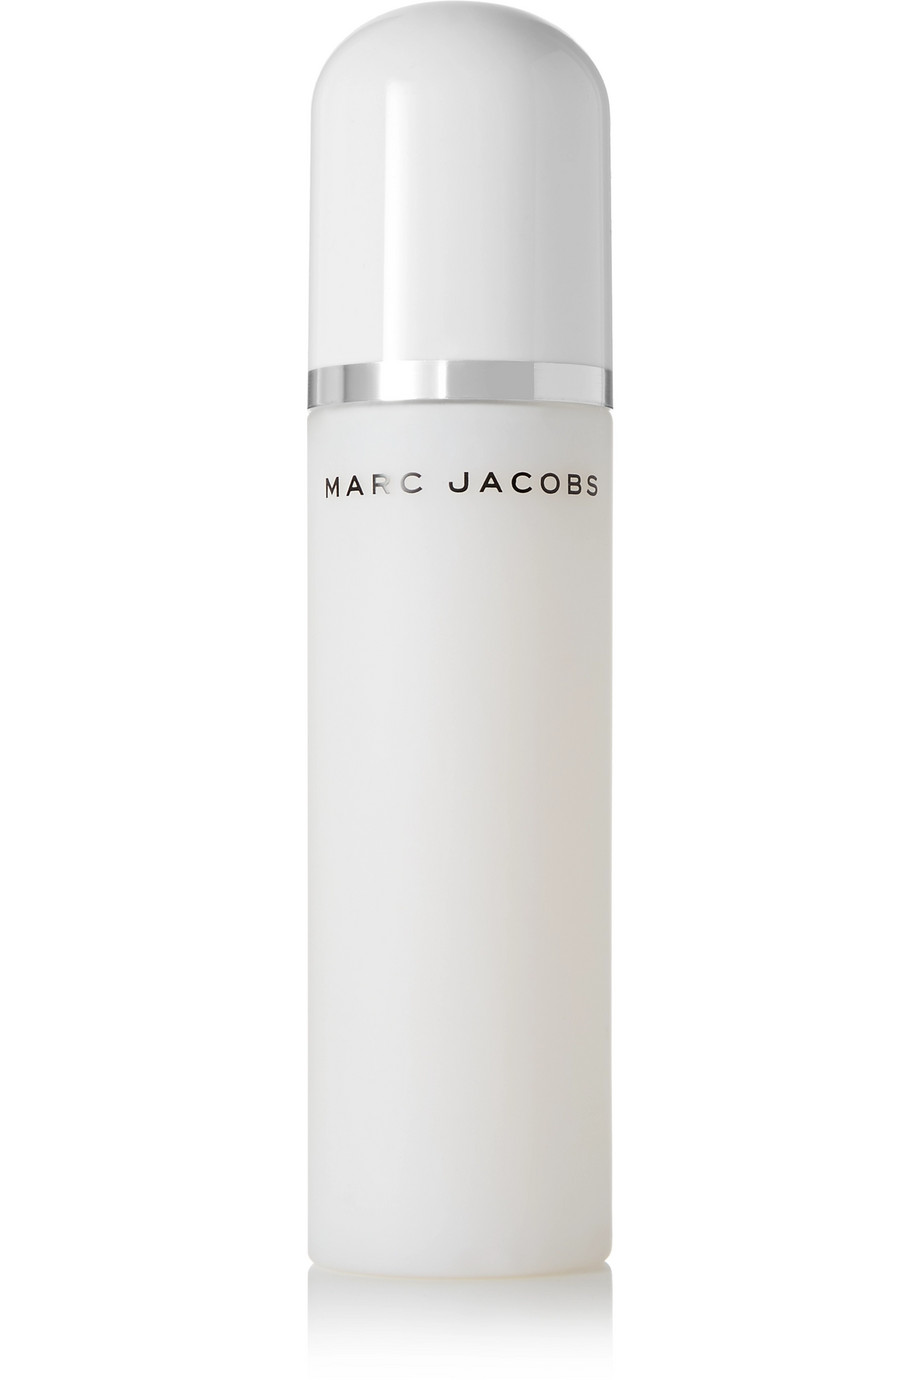 marc jacobs setting mist.jpg